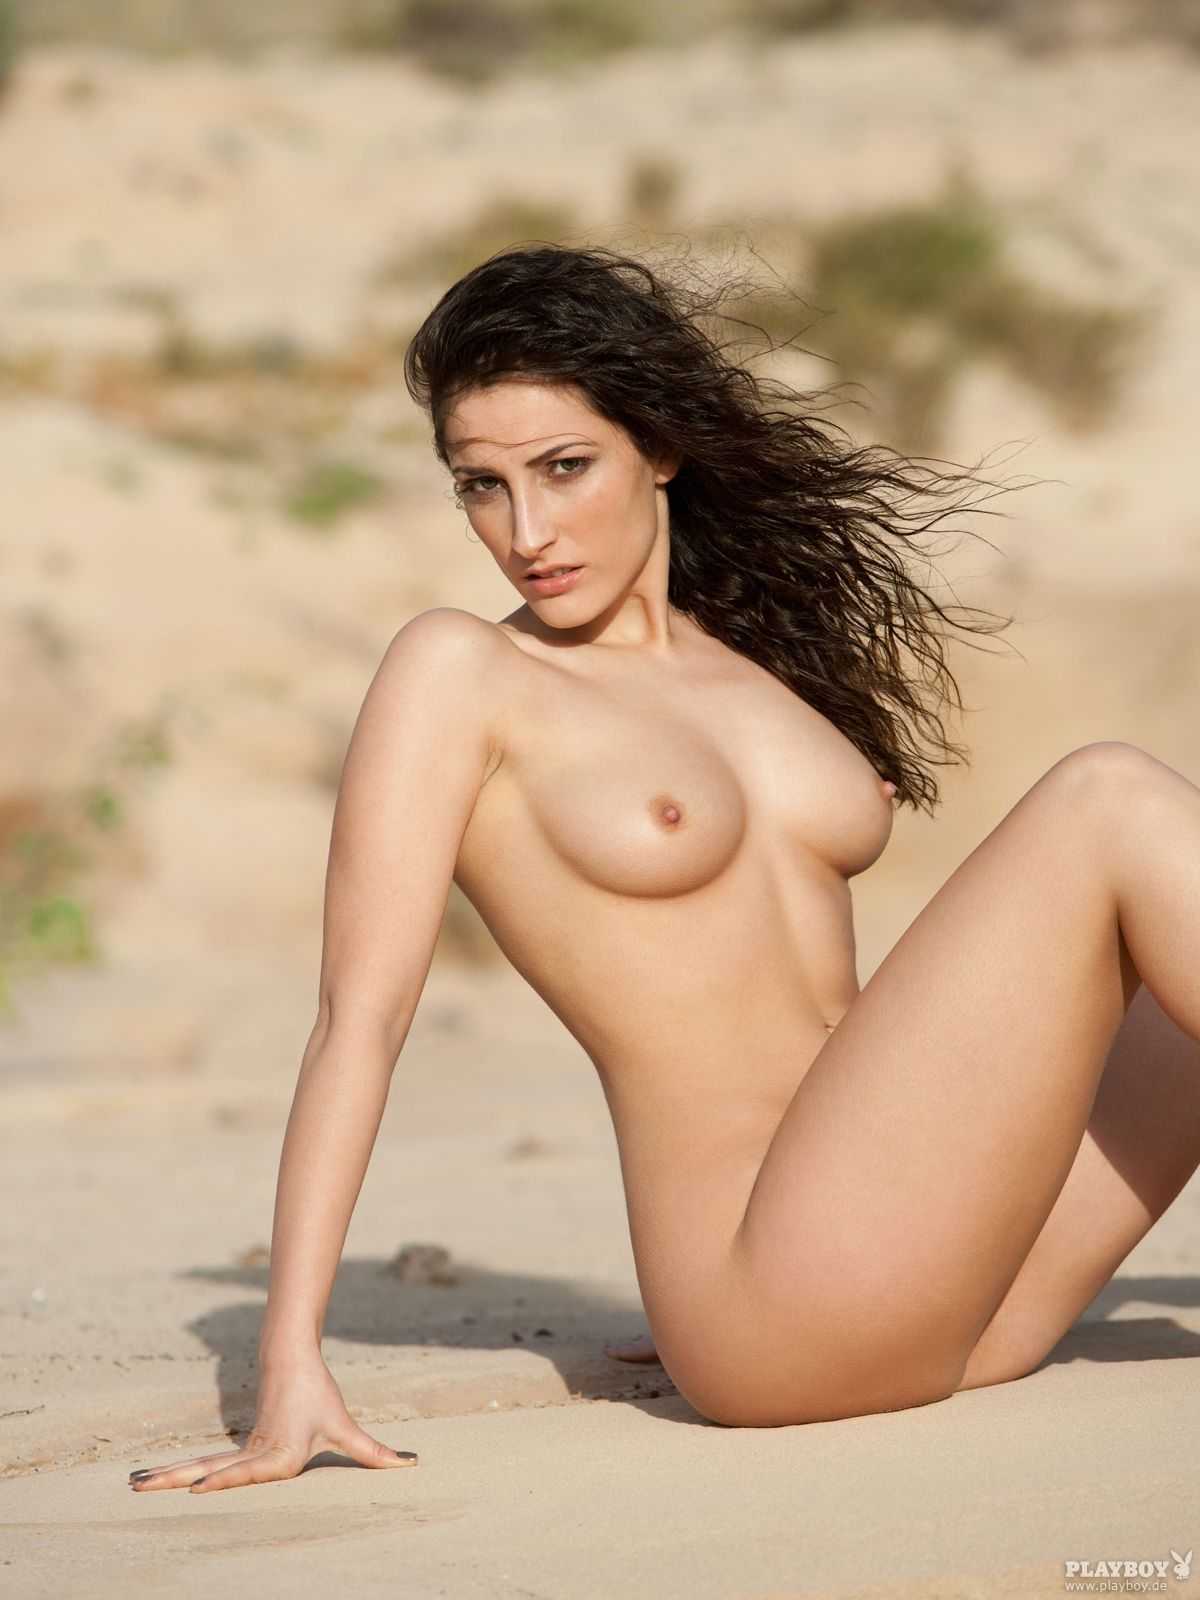 Nude girls pictures bucket list